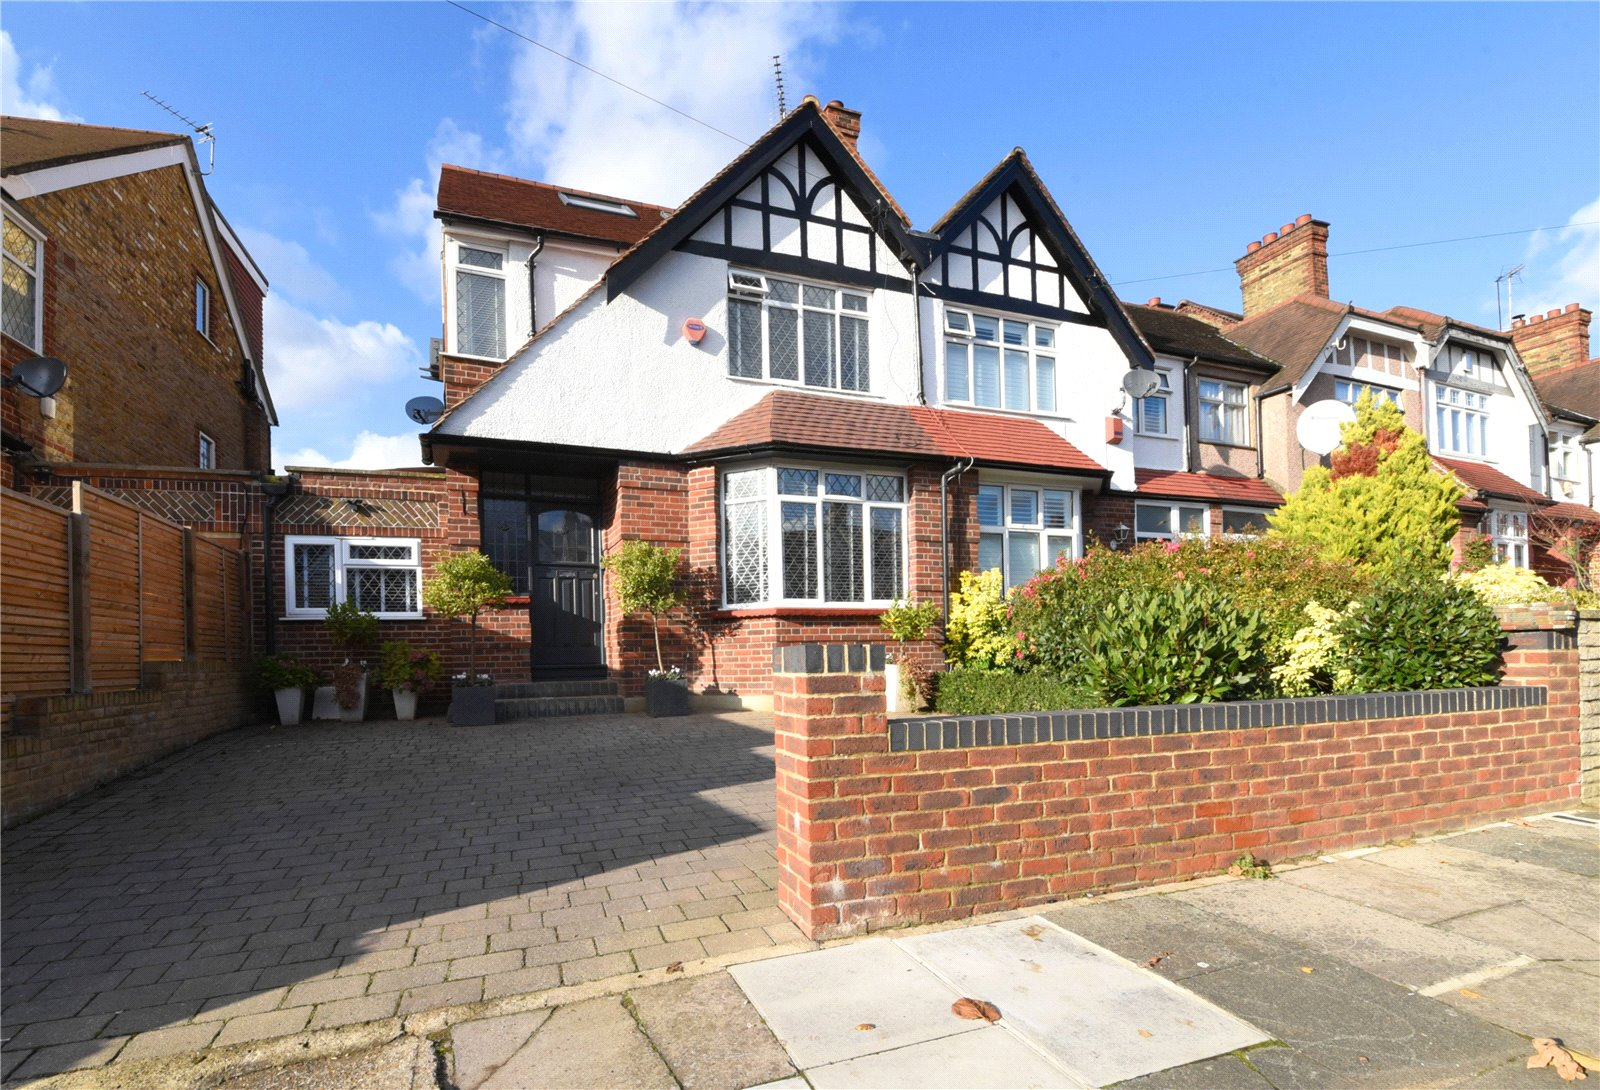 4 bed house for sale in Friern Barnet, N11 1HN 0